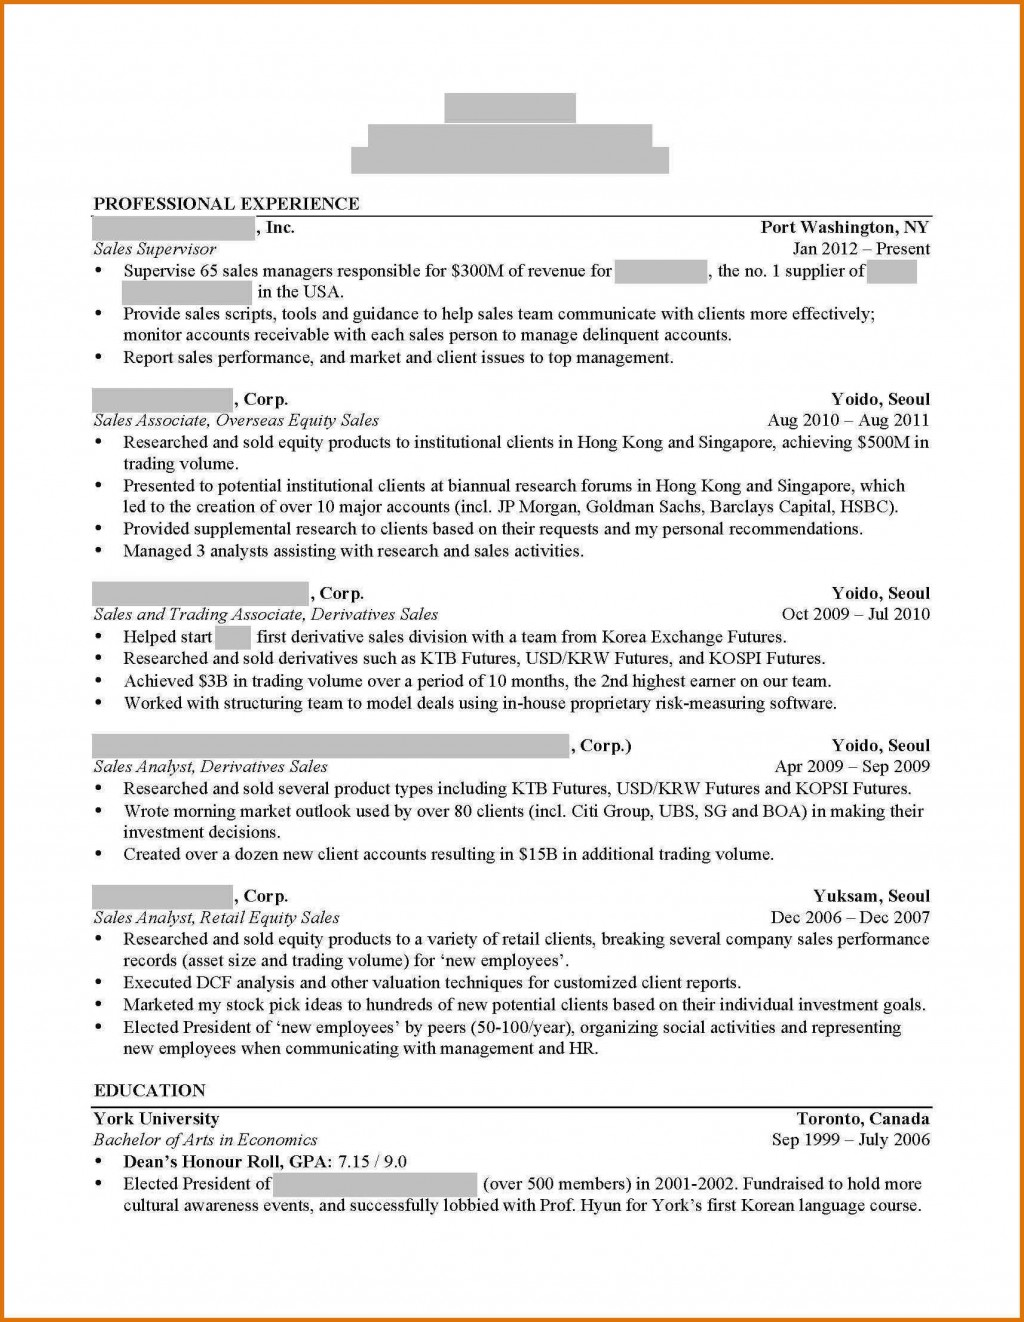 009 Transform Harvard Business School Resume Style On Hbs Class Of Essay Questions Amusing With Mit Length Format Word Counts Tips Limit Book Analysis Awful Count Large